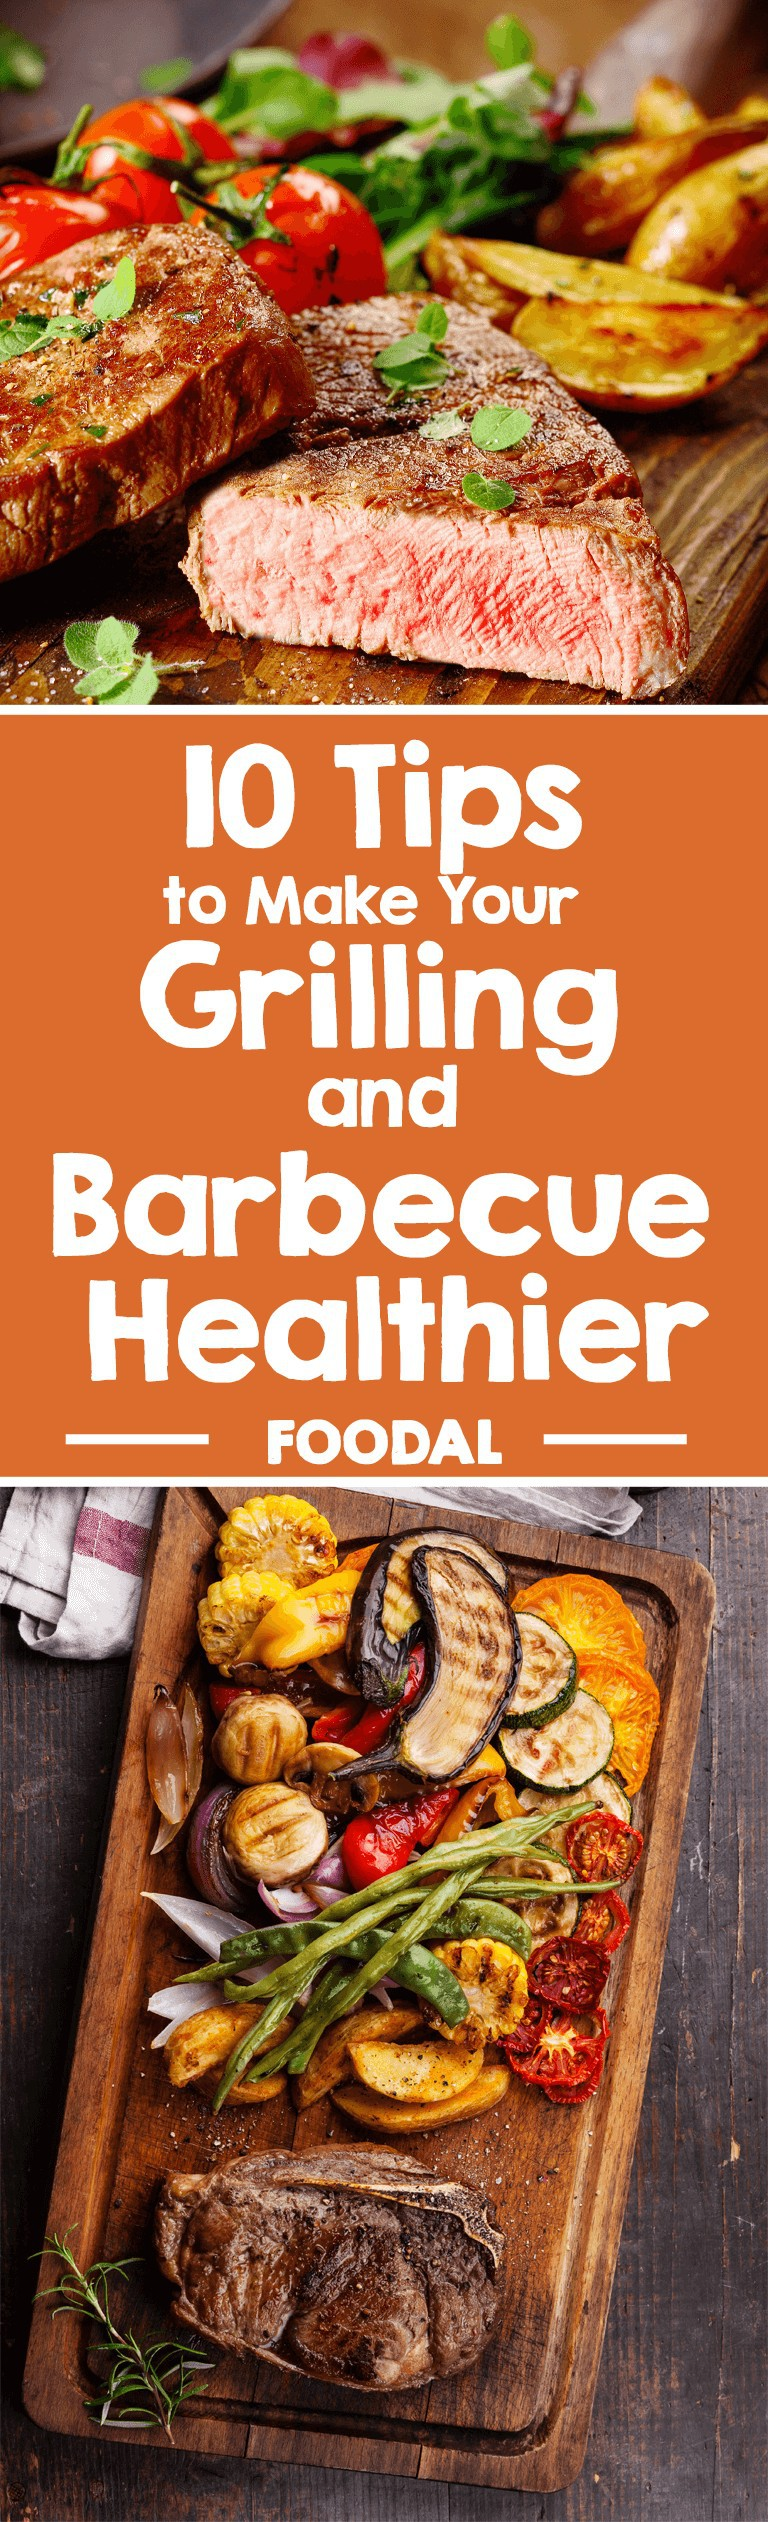 Want to improve your health and make sure that your grilling techniques are up to snuff? Worried that you are inadvertently turning this healthy cooking technique into something not quite so healthy? Read Foodal's guide to make sure that you are using proper techniques. https://foodal.com/kitchen/outdoor-appliances/barbeque-grills/the-healthiest-cooking-method/